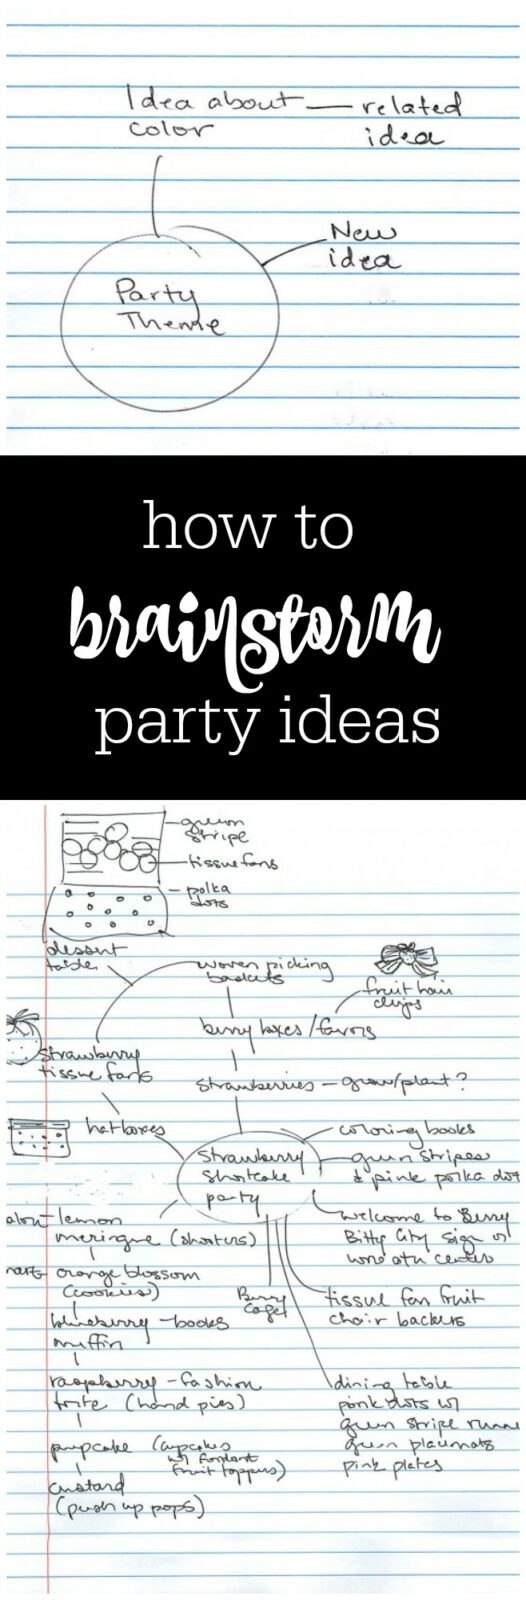 How to brainstorm your own party ideas - The Party Teacher